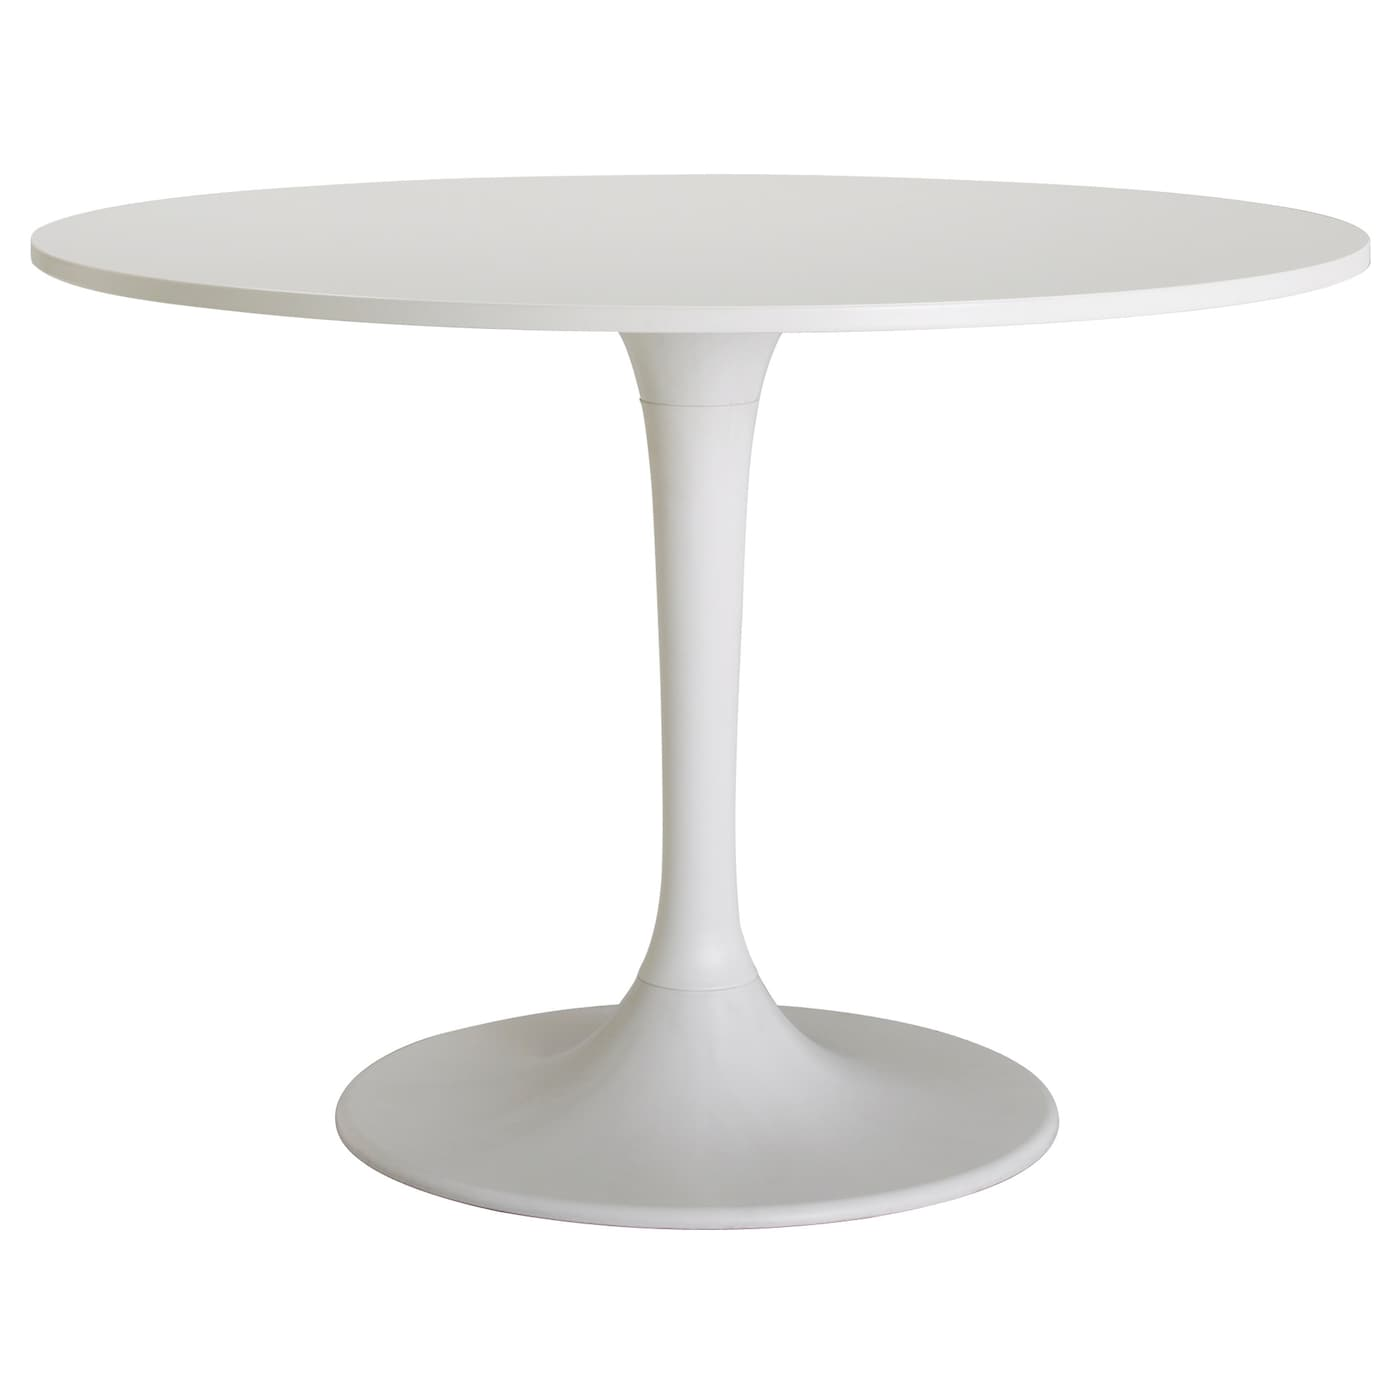 IKEA DOCKSTA table A round table, with soft edges, gives a relaxed impression in a room.